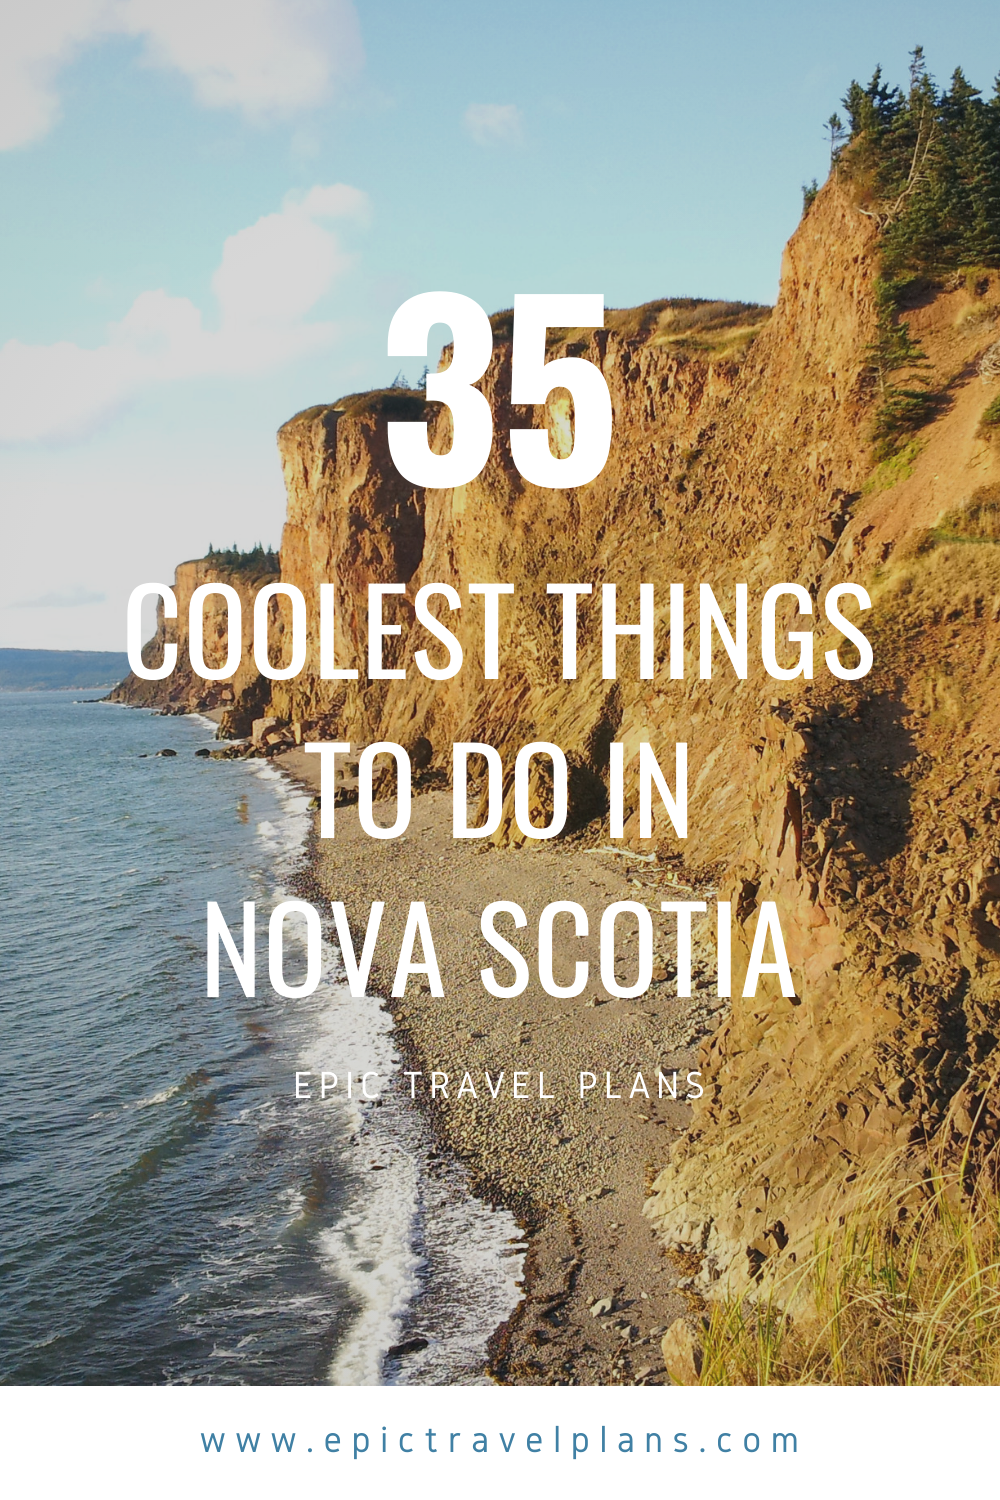 Coolest things to do on the Bay of Fundy, Nova Scotia